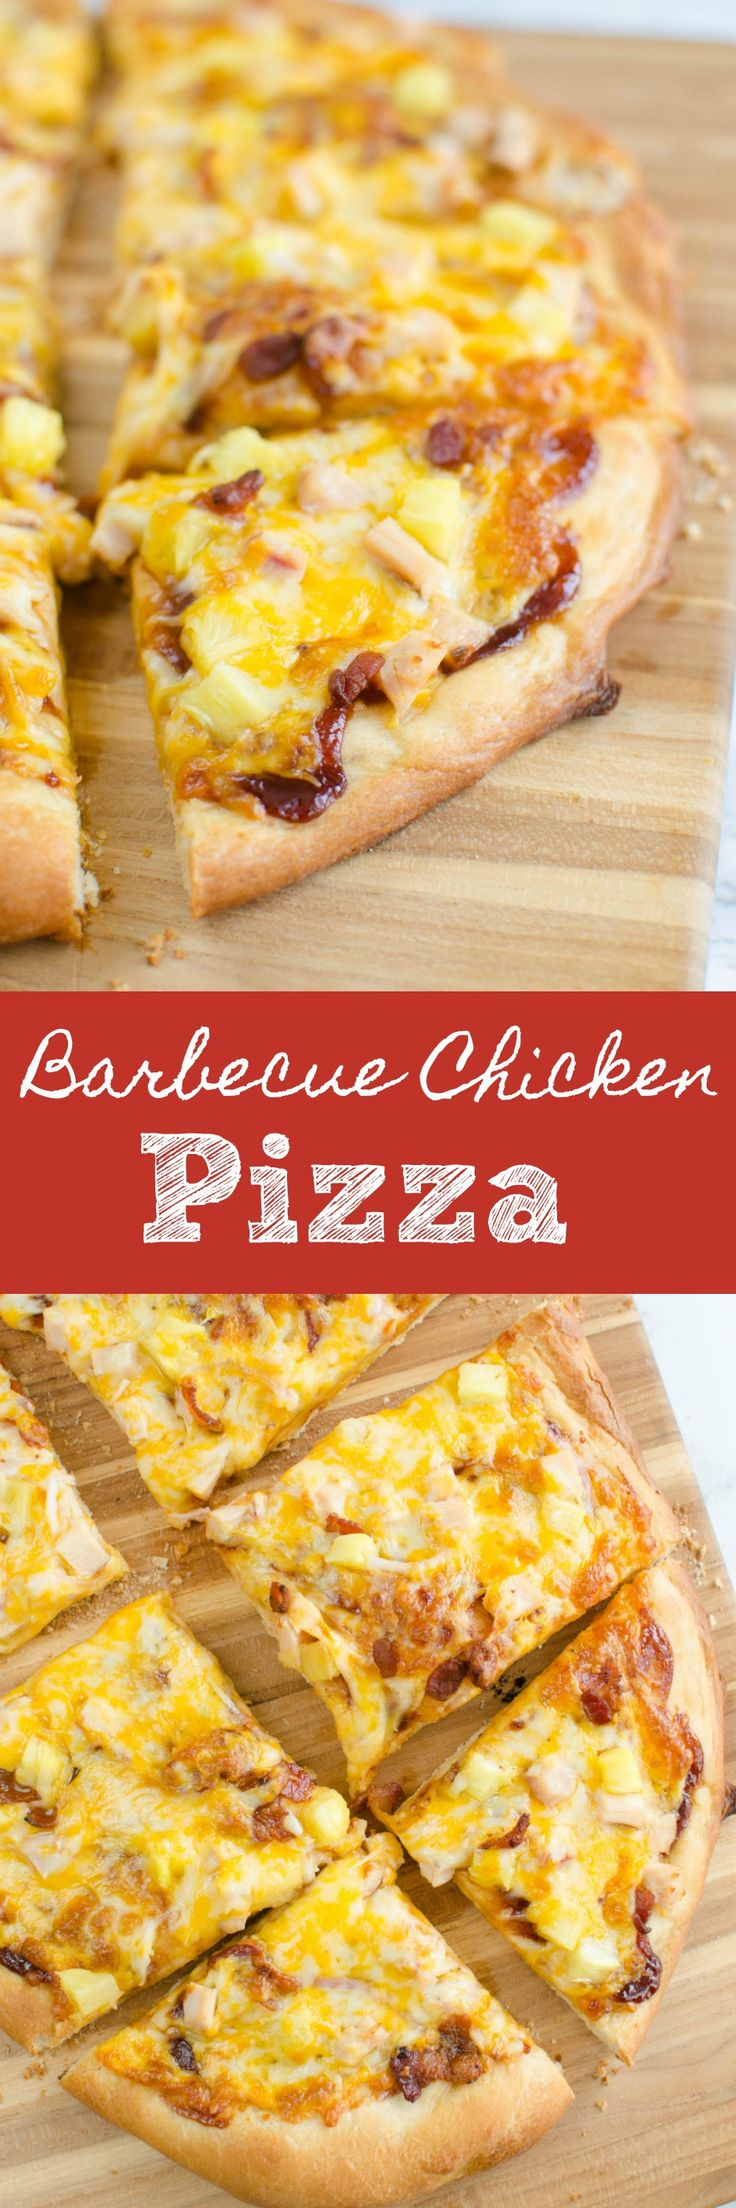 Barbecue Chicken Pizza - a delicious recipe for pizza night! Barbecue sauce, chicken, bacon, pineapple, and red onion layered with colby jack cheese!